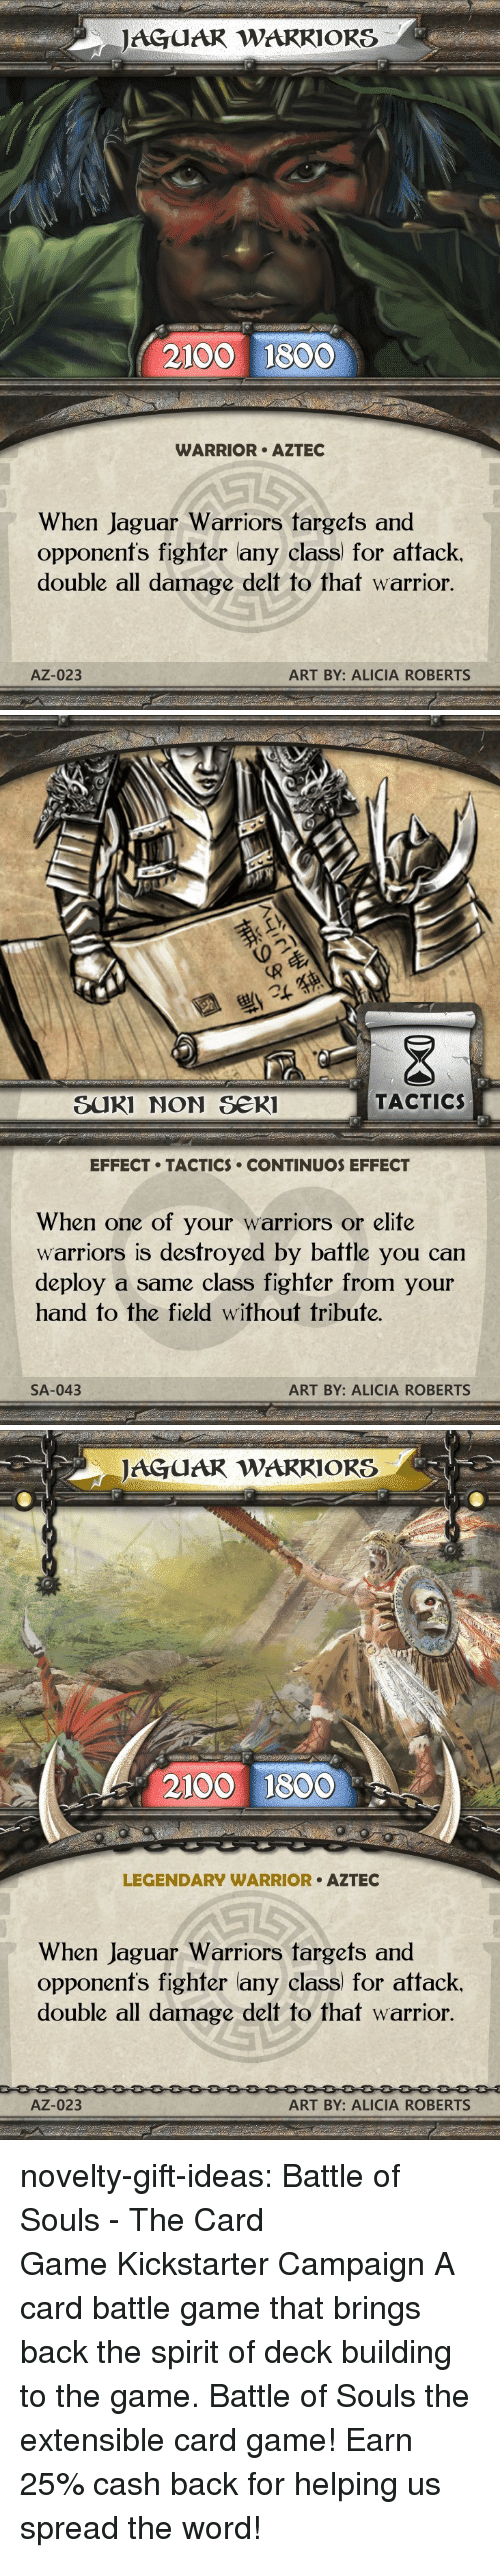 The Game, Tumblr, and Blog: JAGUAR WARRIORS  2100 1800  WARRIOR AZTEC  When Jaguar Warriors targets and  opponent's fighter any class) for attack  double all damage delt to that warrior.  AZ-023  ART BY: ALICIA ROBERTS   退  SUKI NON Se  TACTIC  EFFECT TACTICS CONTINUOS EFFECT  When one of your warriors or elite  warriors is destroyed by battle you can  deploy a same class fighfer from your  hand to the field without tribute.  SA-043  ART BY: ALICIA ROBERTS   JAGUAR WAKRIORS  2100 1800  LEGENDARY WARRIOR AZTEC  When Jaguar Warriors fargets and  opponenfs fighter lany class) for attack.  double all damage delt to that warrior  AZ-023  ART BY: ALICIA ROBERTS novelty-gift-ideas: Battle of Souls - The Card Game Kickstarter Campaign A card battle game that brings back the spirit of deck building to the game. Battle of Souls the extensible card game!   Earn 25% cash back for helping us spread the word!